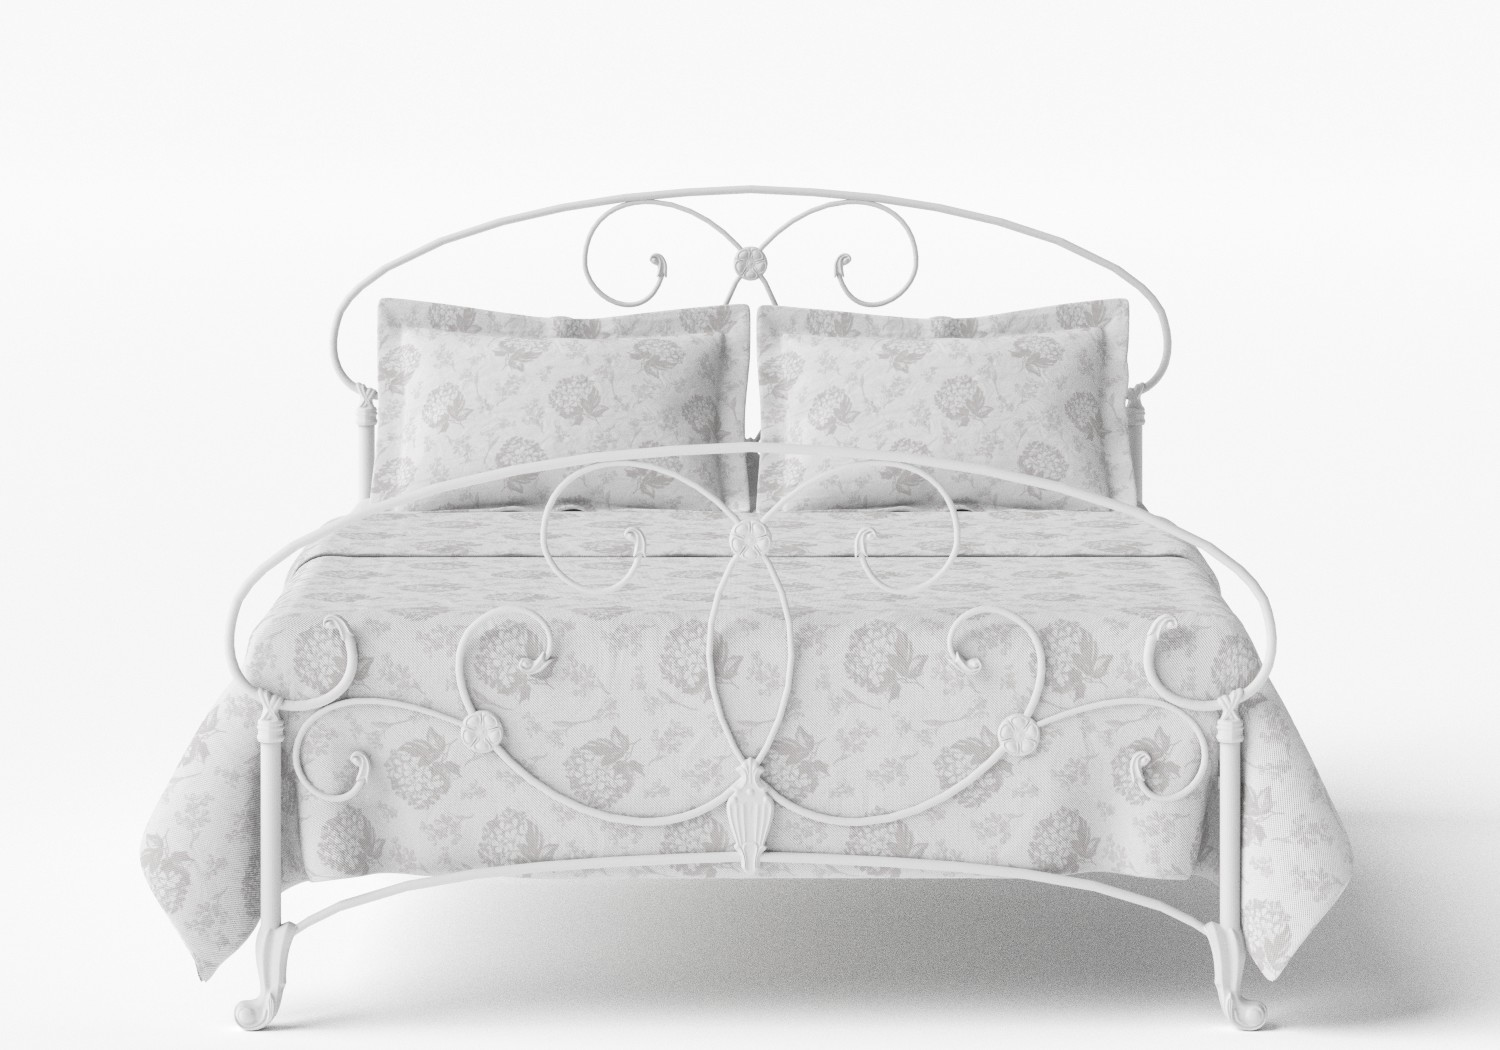 Arigna Iron/Metal Bed in Satin White